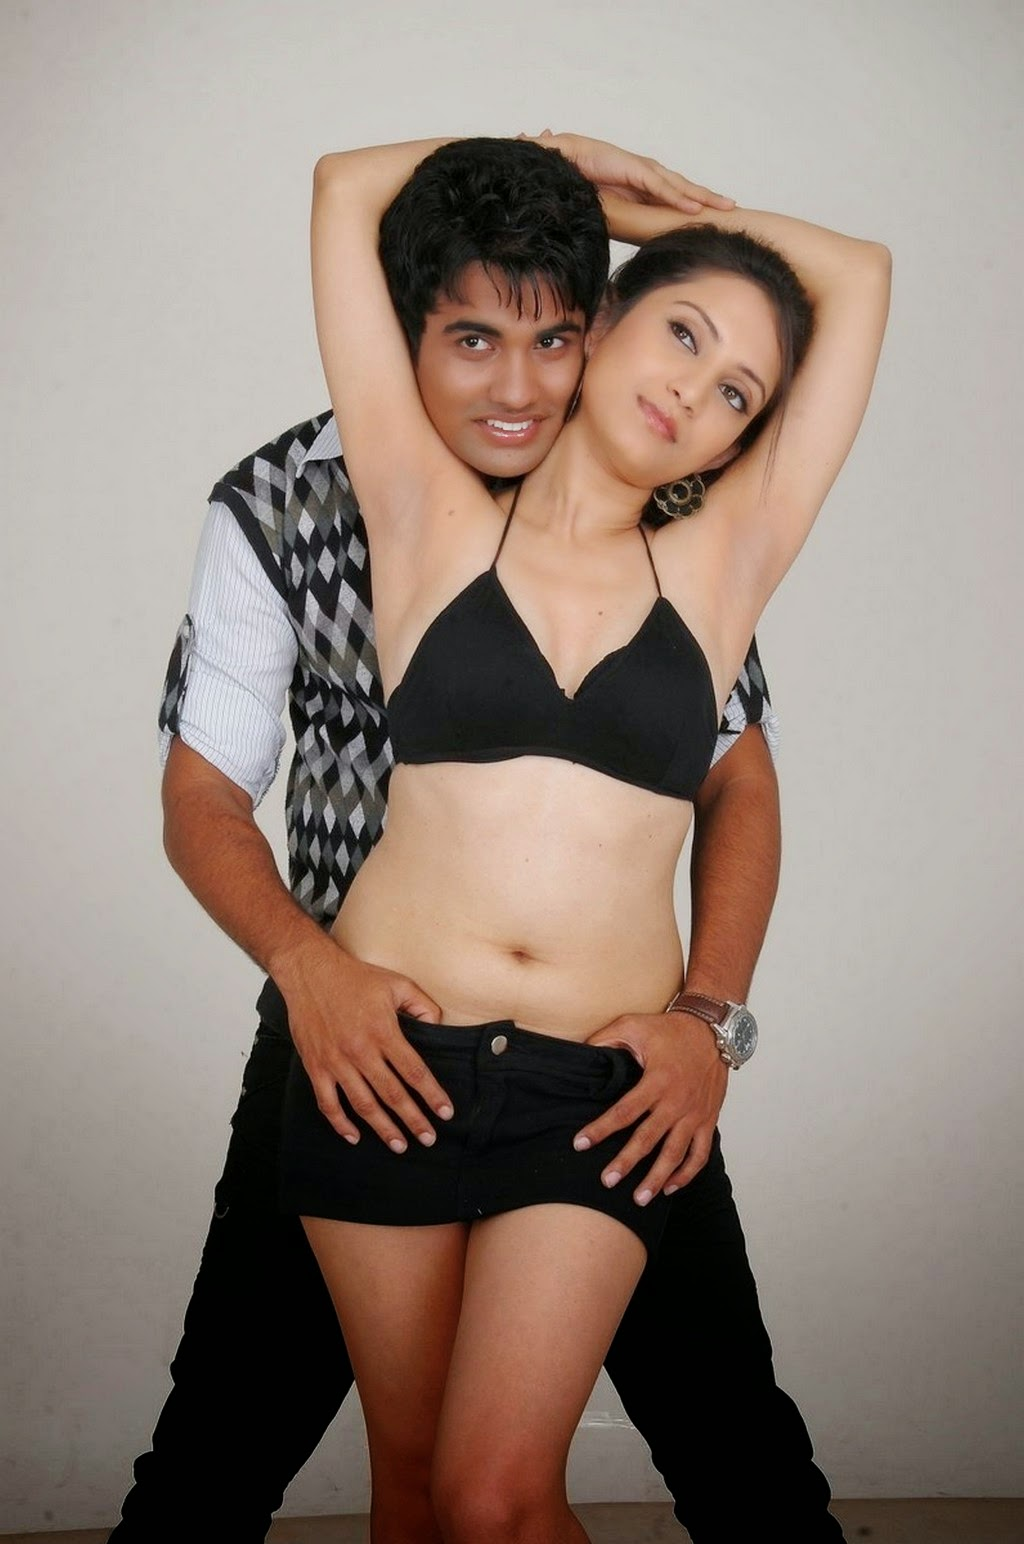 south indian bgrade movie pictures.